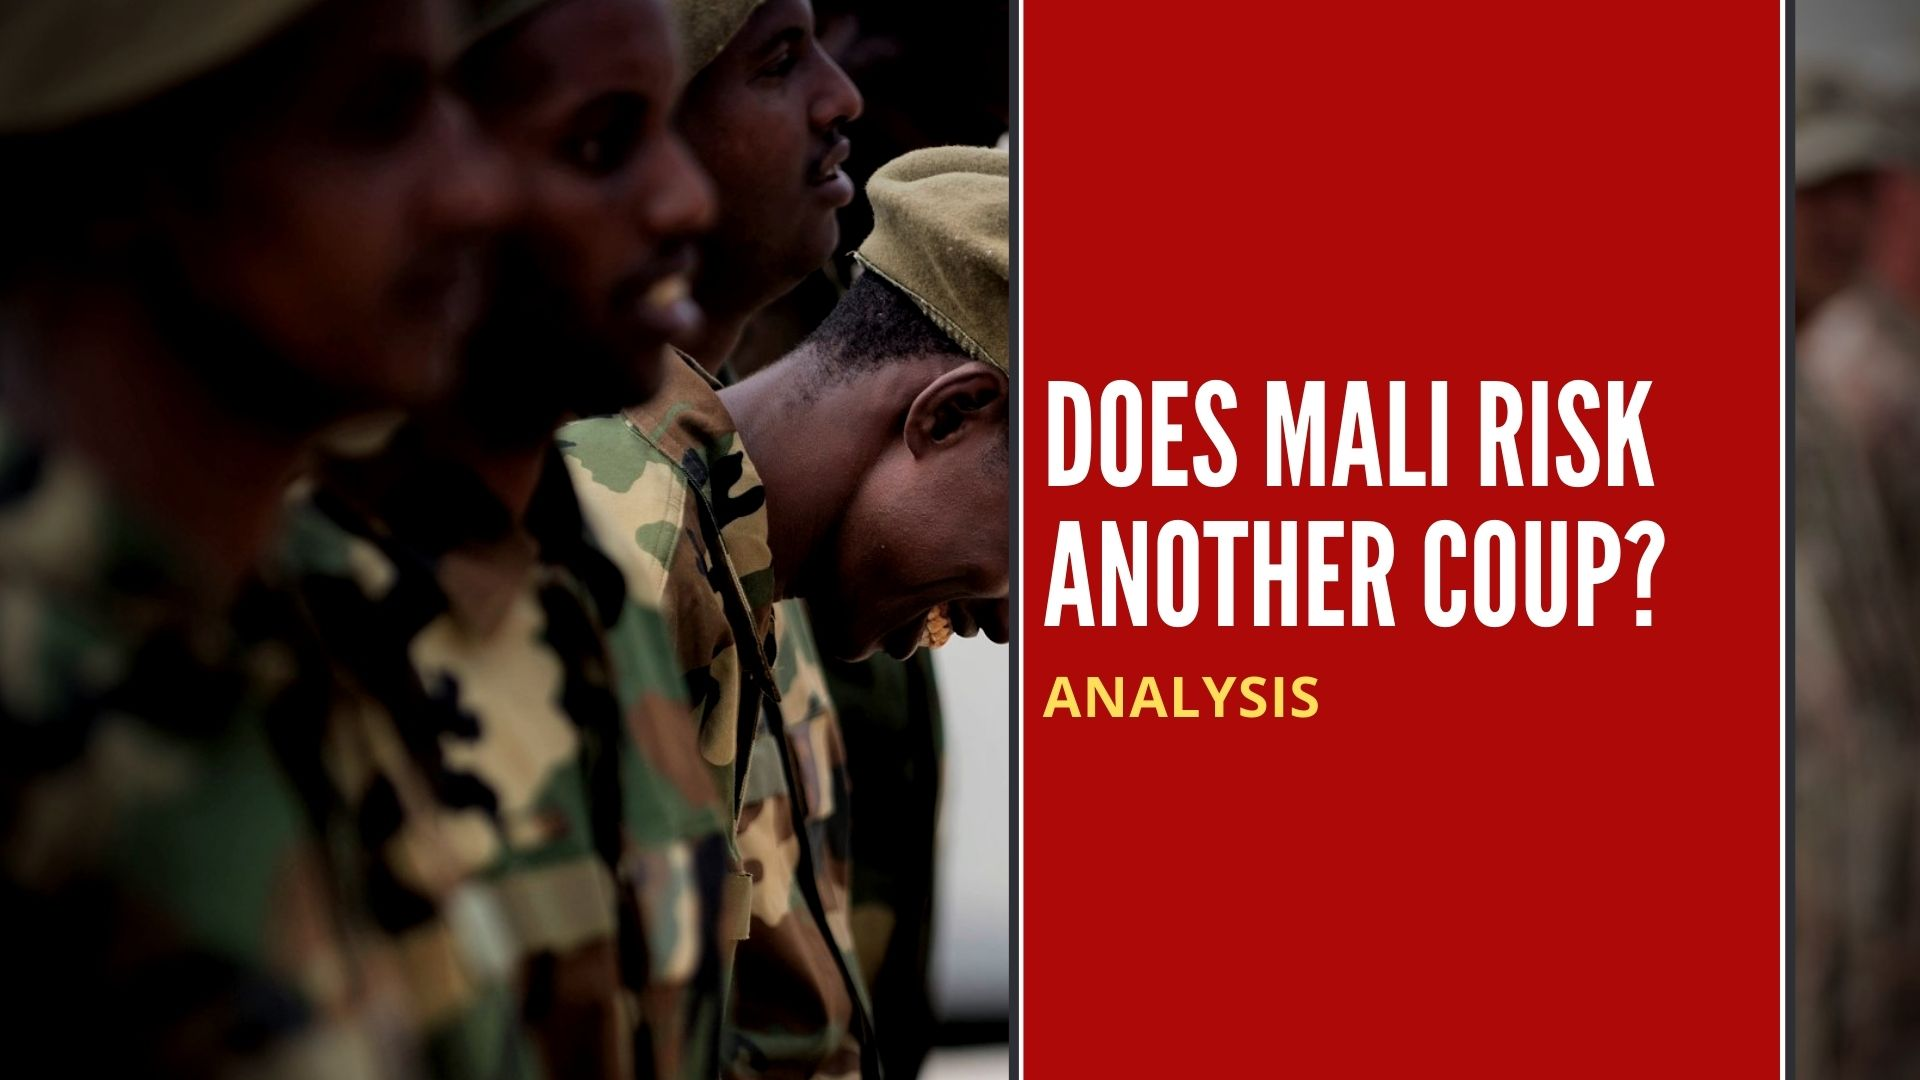 Does Mali risk another coup?